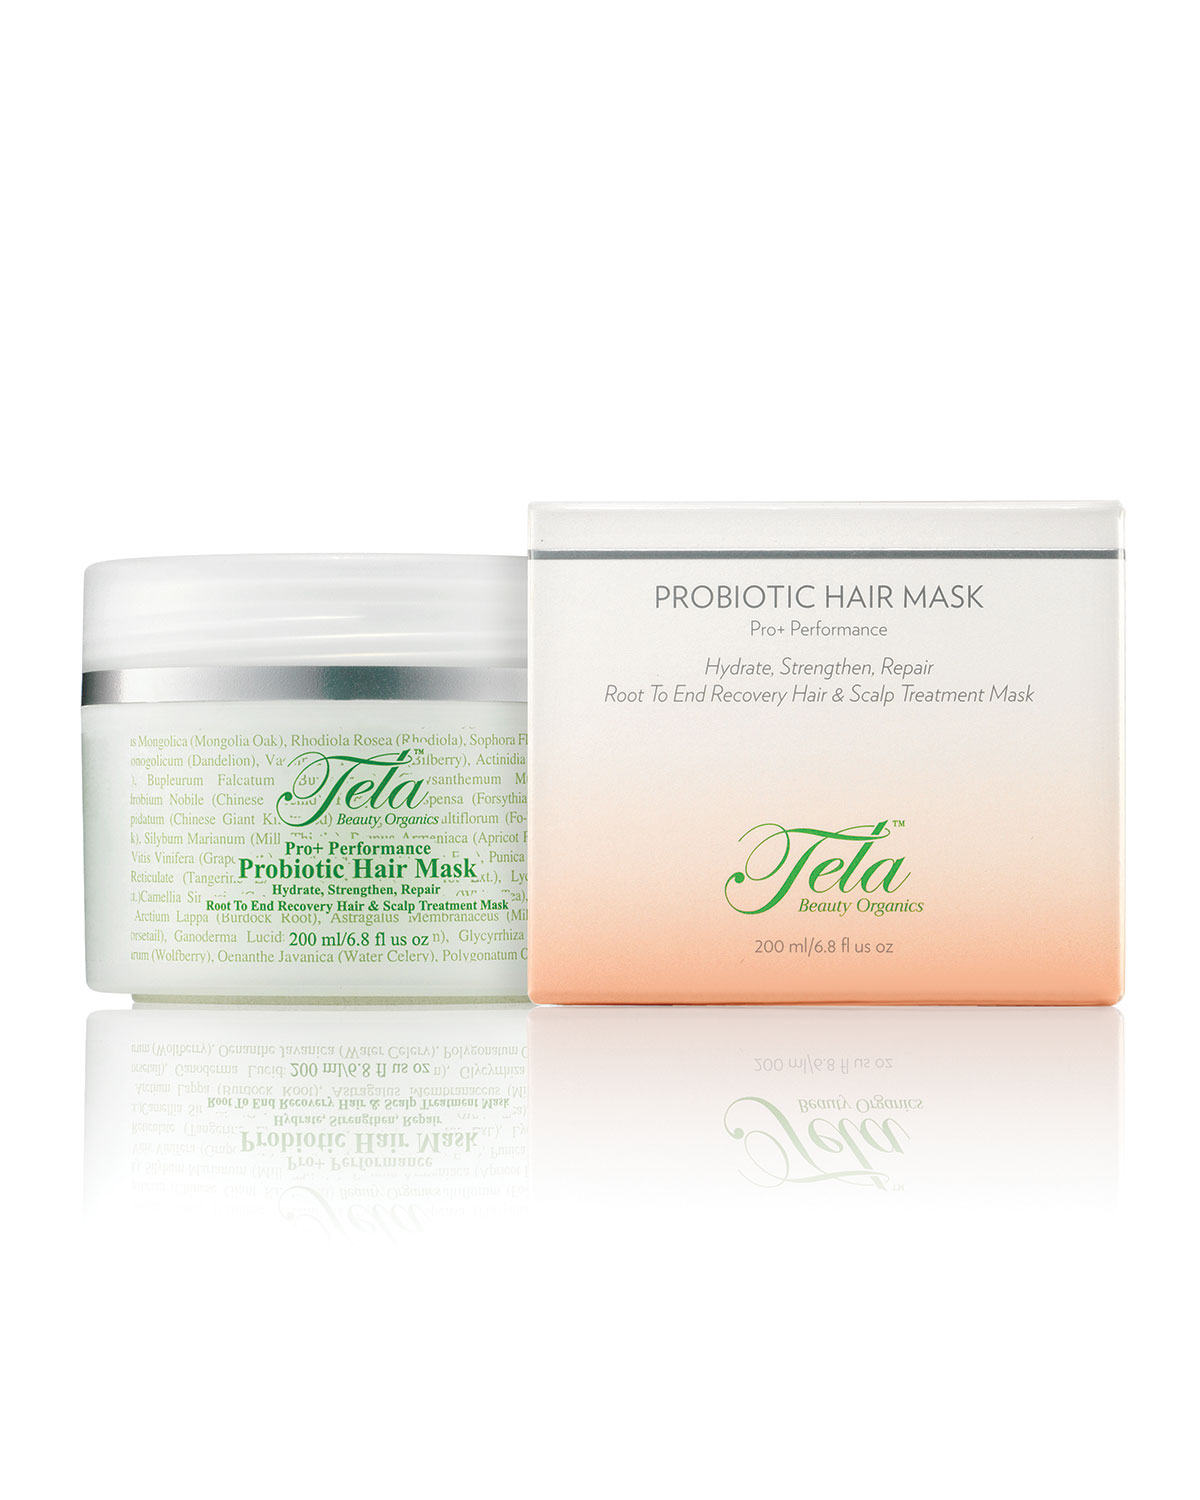 Tela Beauty Organics Probiotic Hair mL Mask, 6.8 oz./ 201 mL Hair 365557